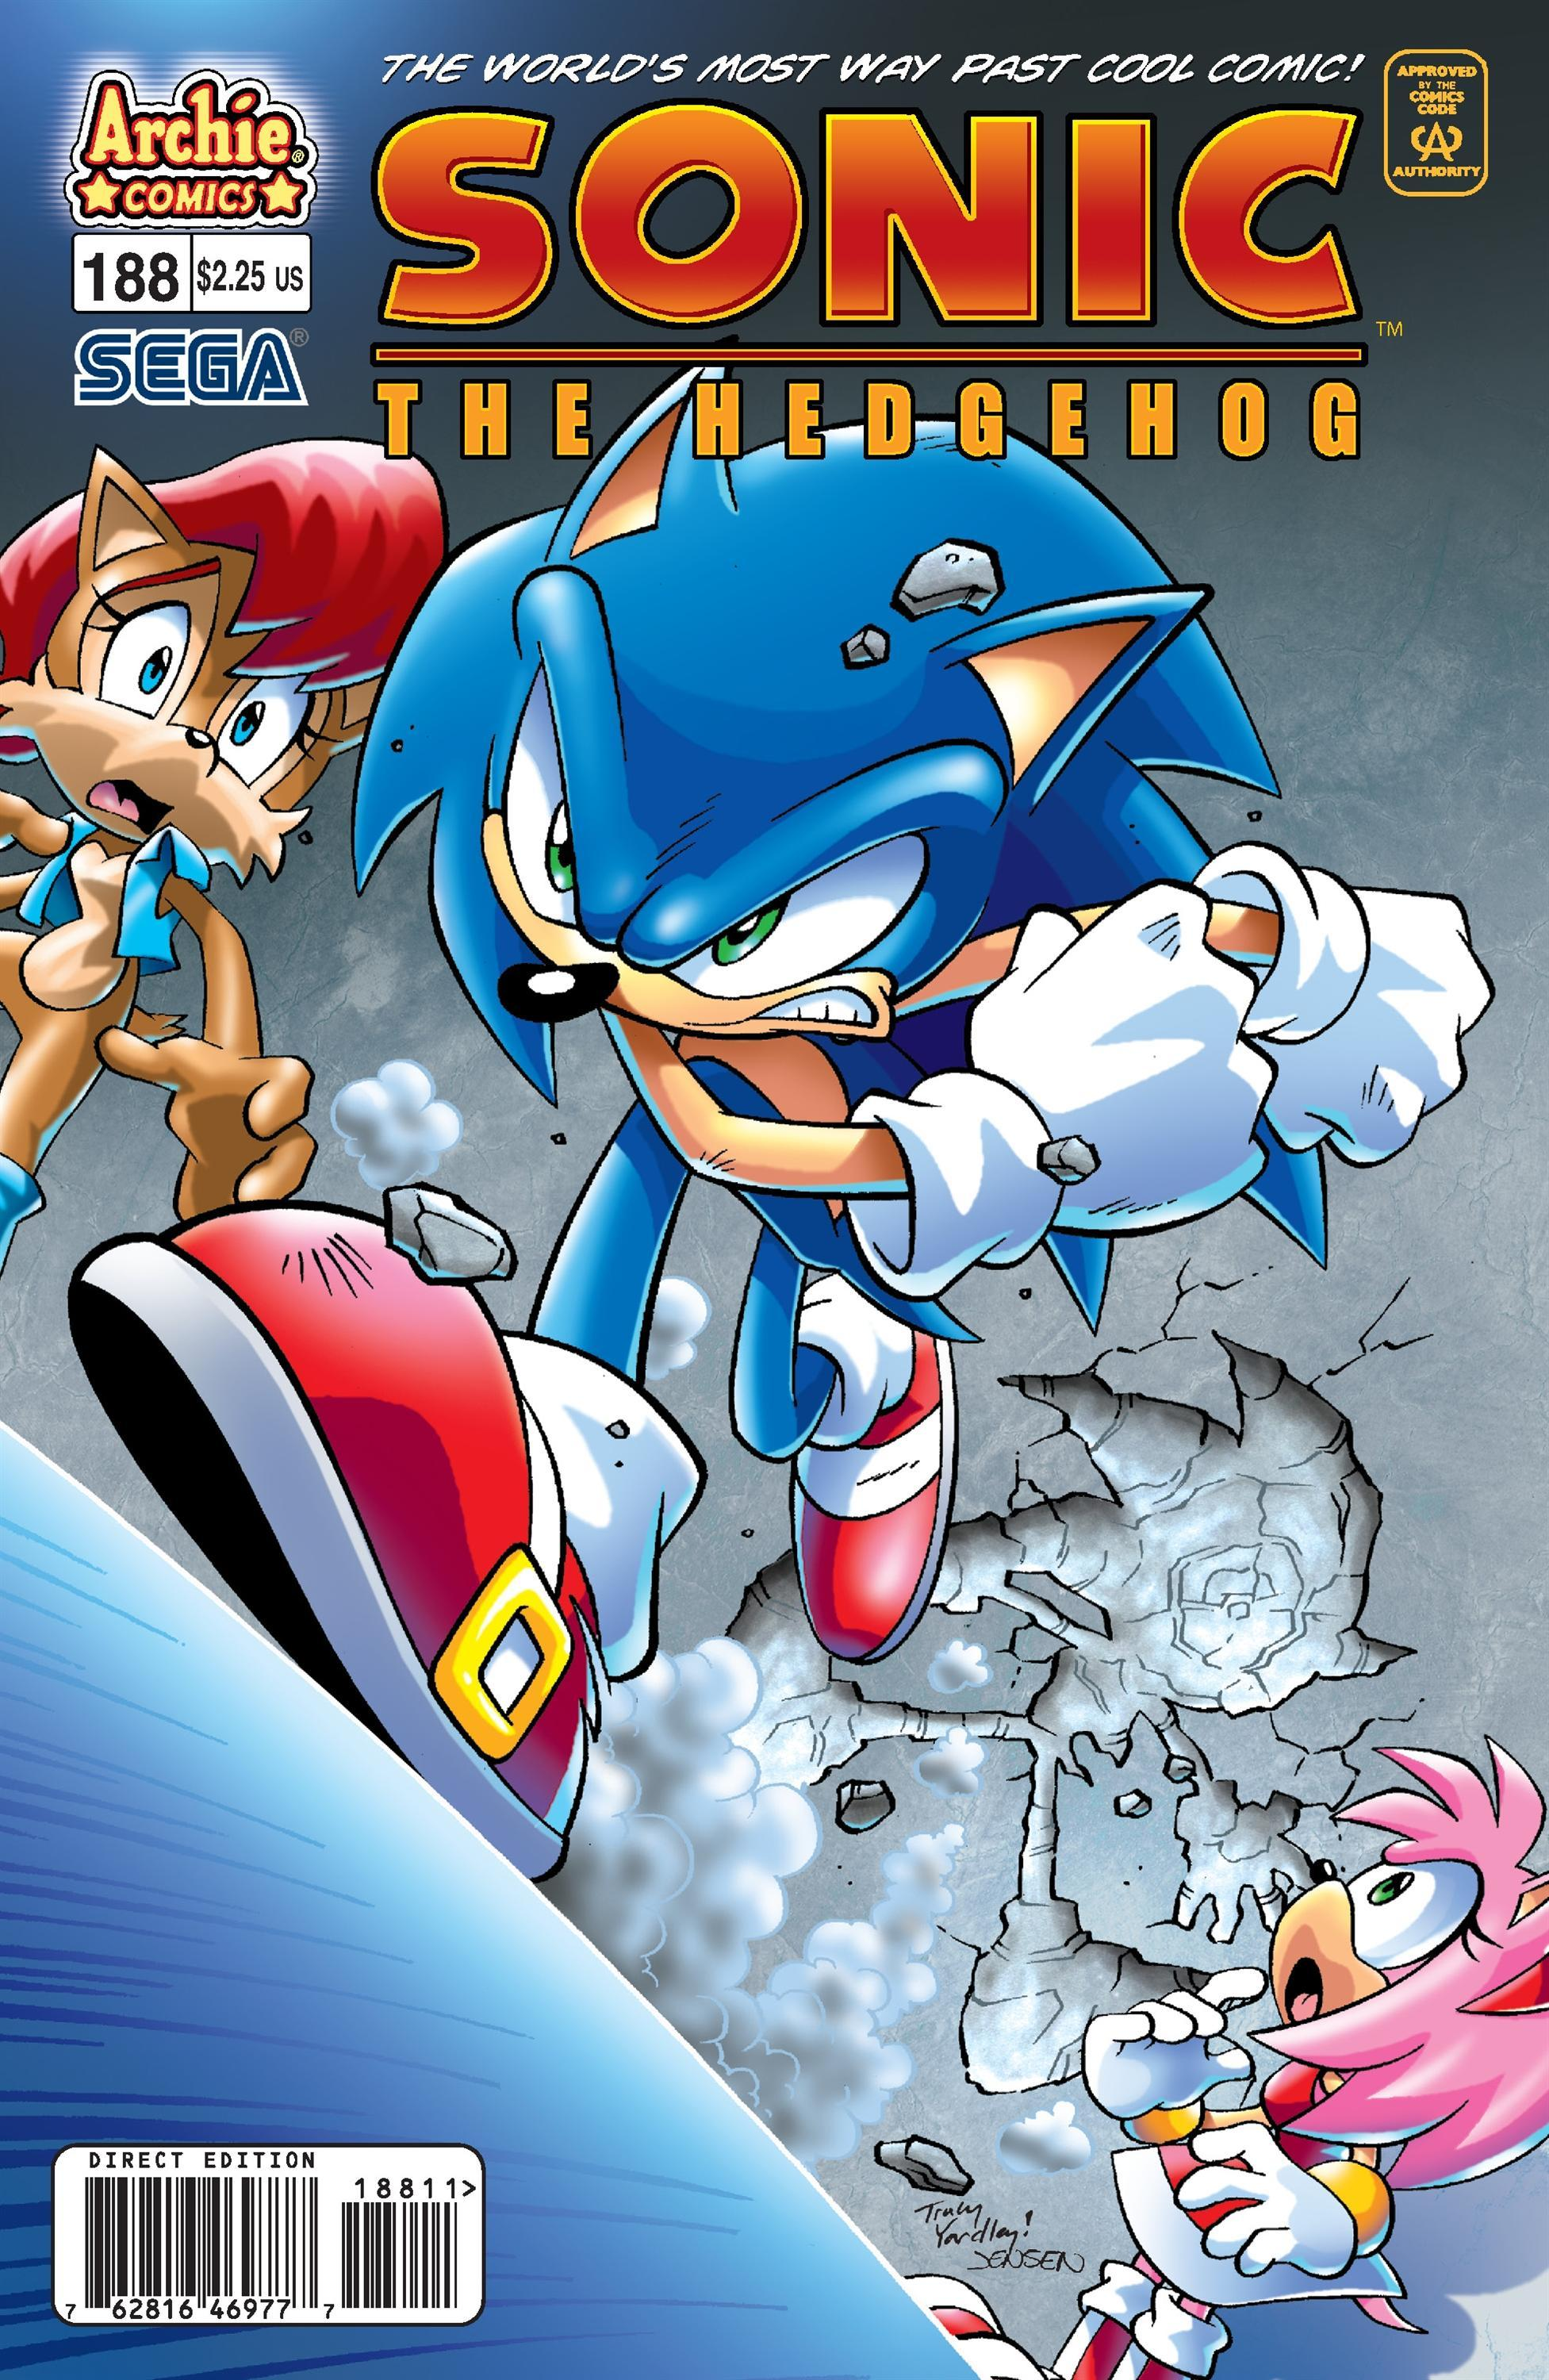 Archie Sonic the Hedgehog Issue 188